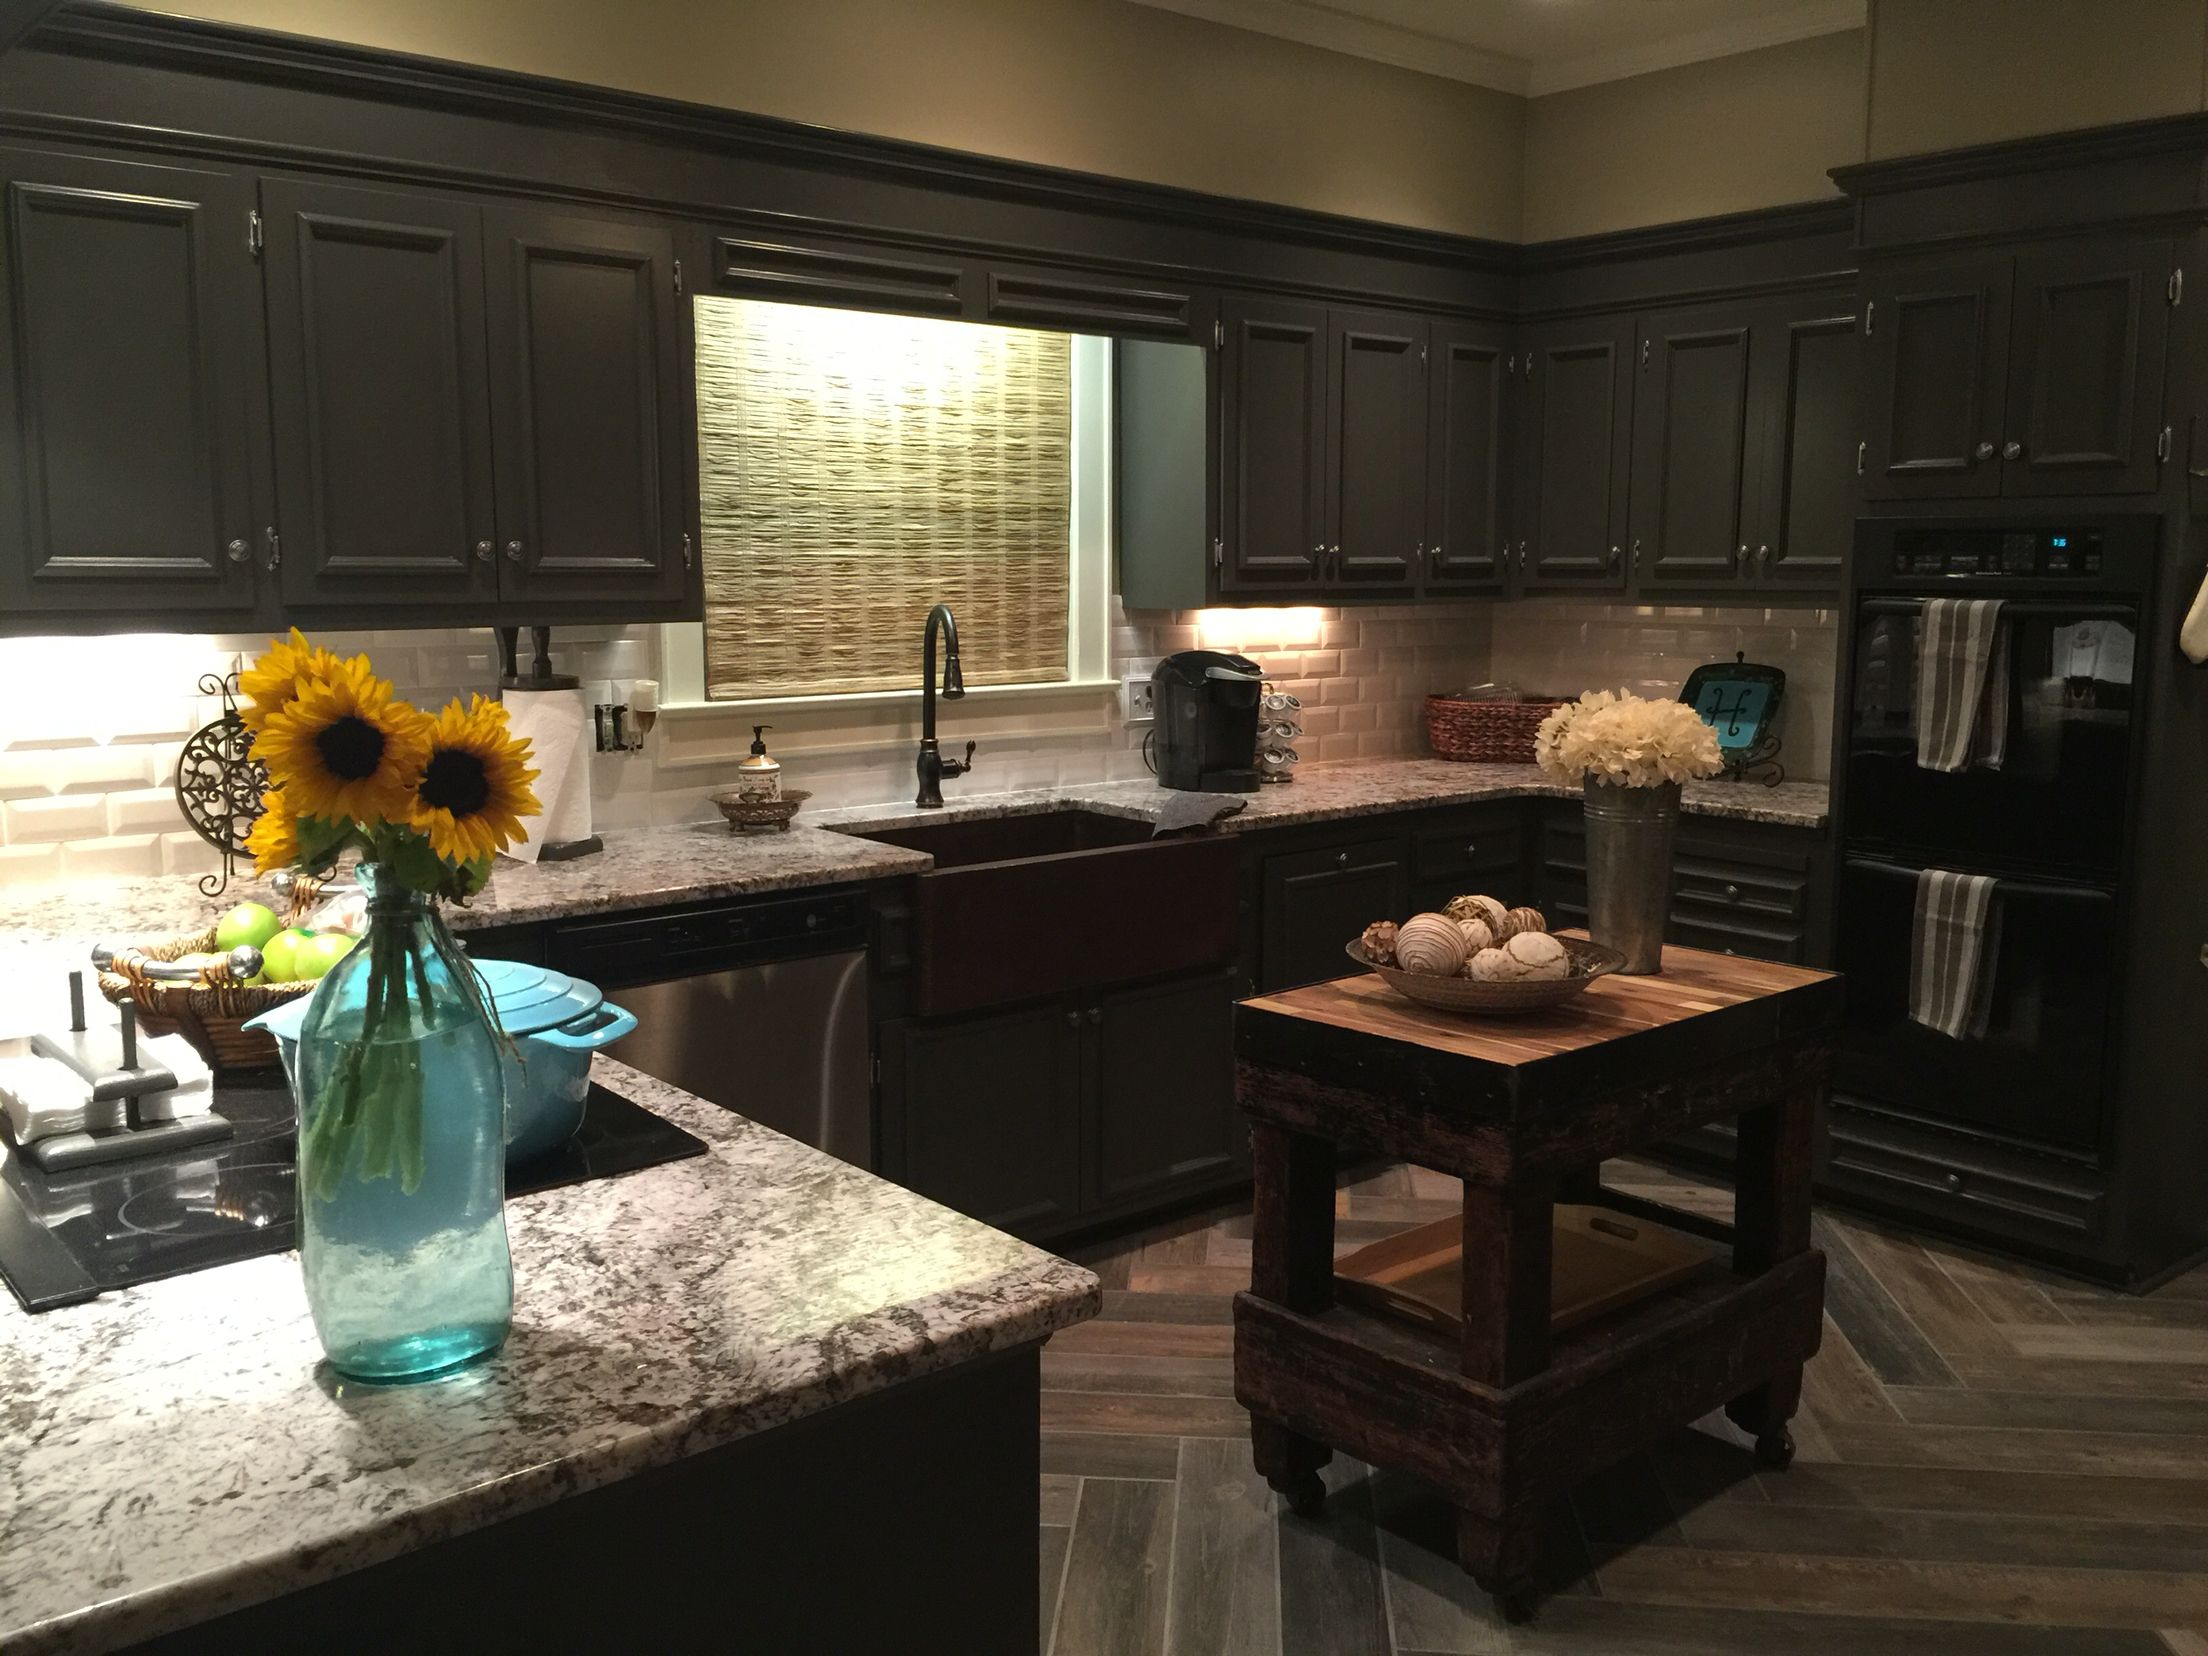 My farmhouse funky kitchen bianco antico granite sherwin my farmhouse funky kitchen bianco antico granite sherwin williams urbane bronze painted kitchen cabinets dailygadgetfo Images